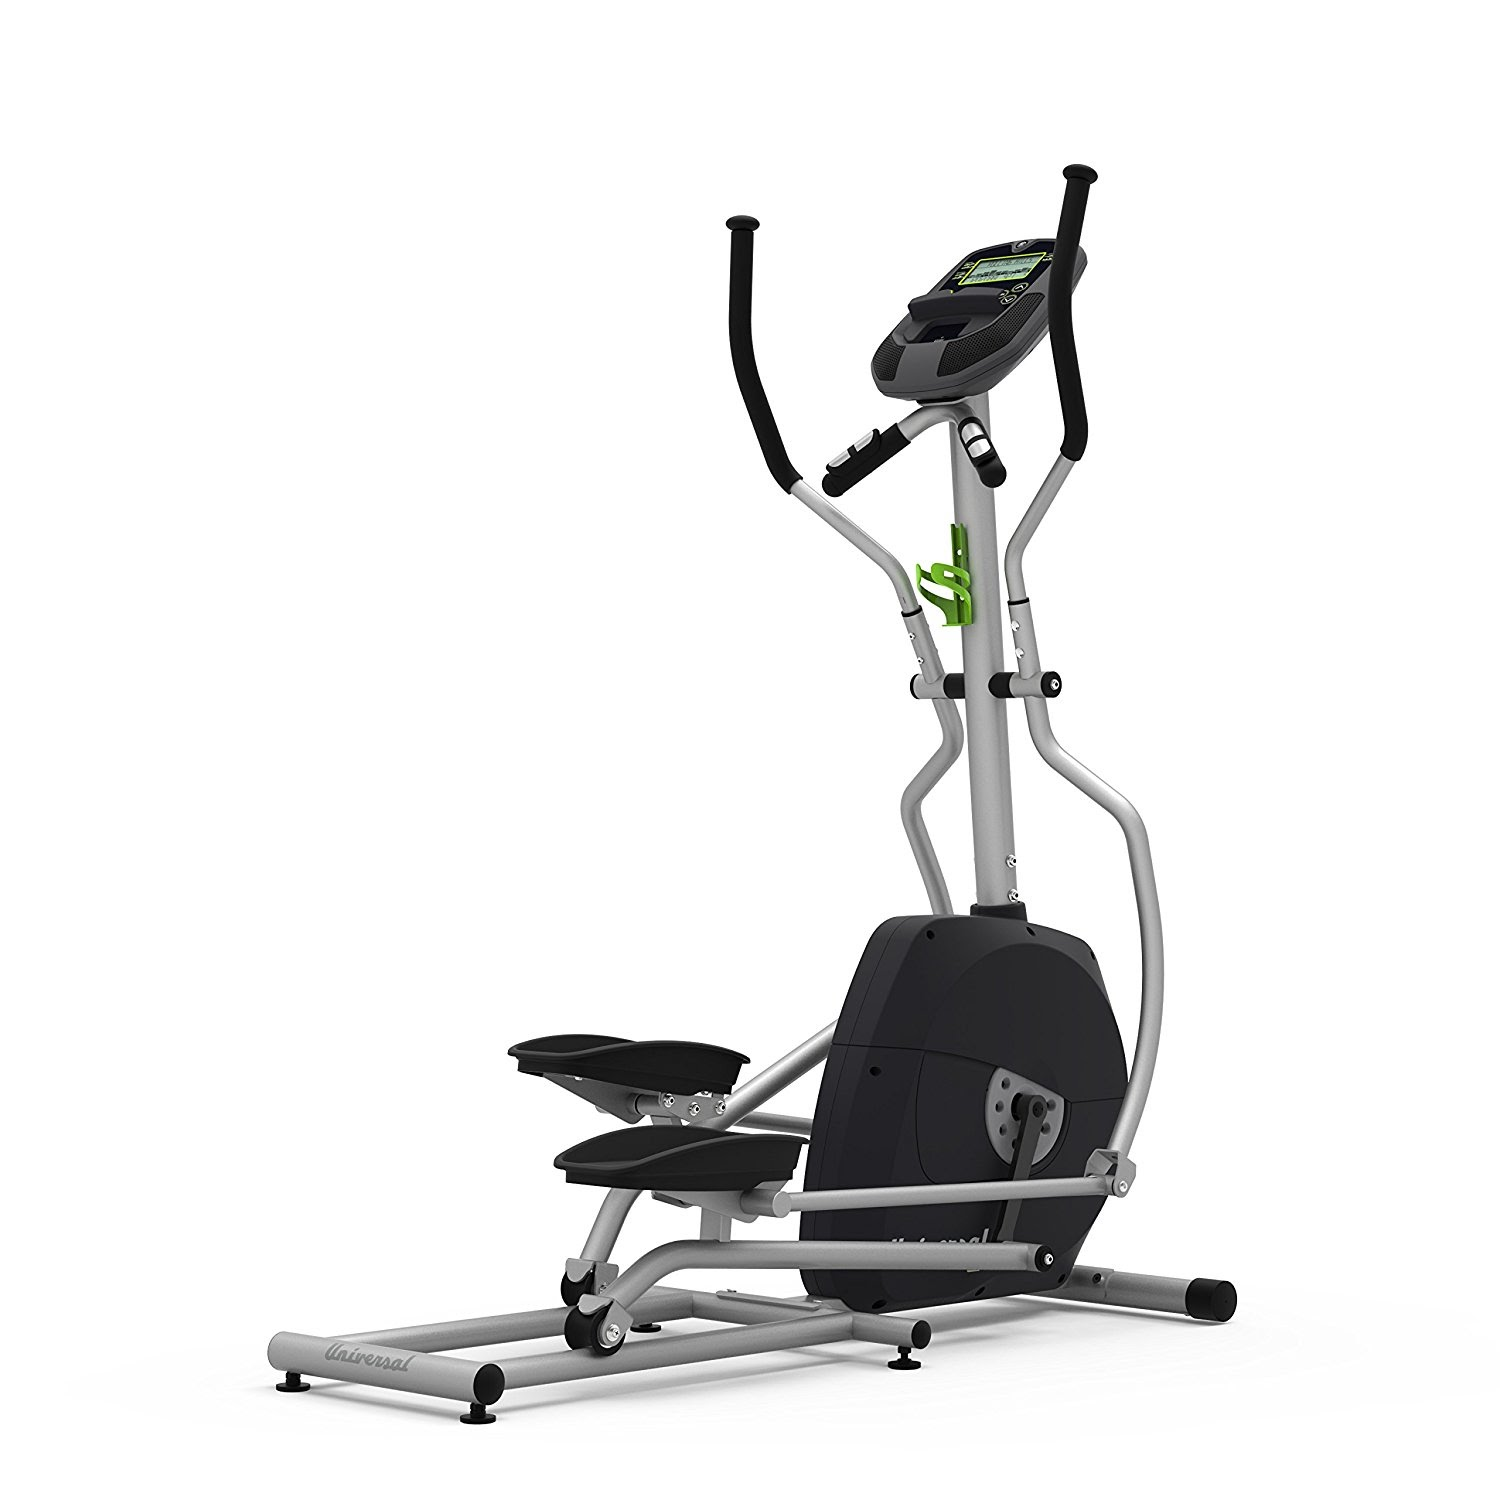 Home Gym Zone: Universal E40 Elliptical Cross Trainer, Review